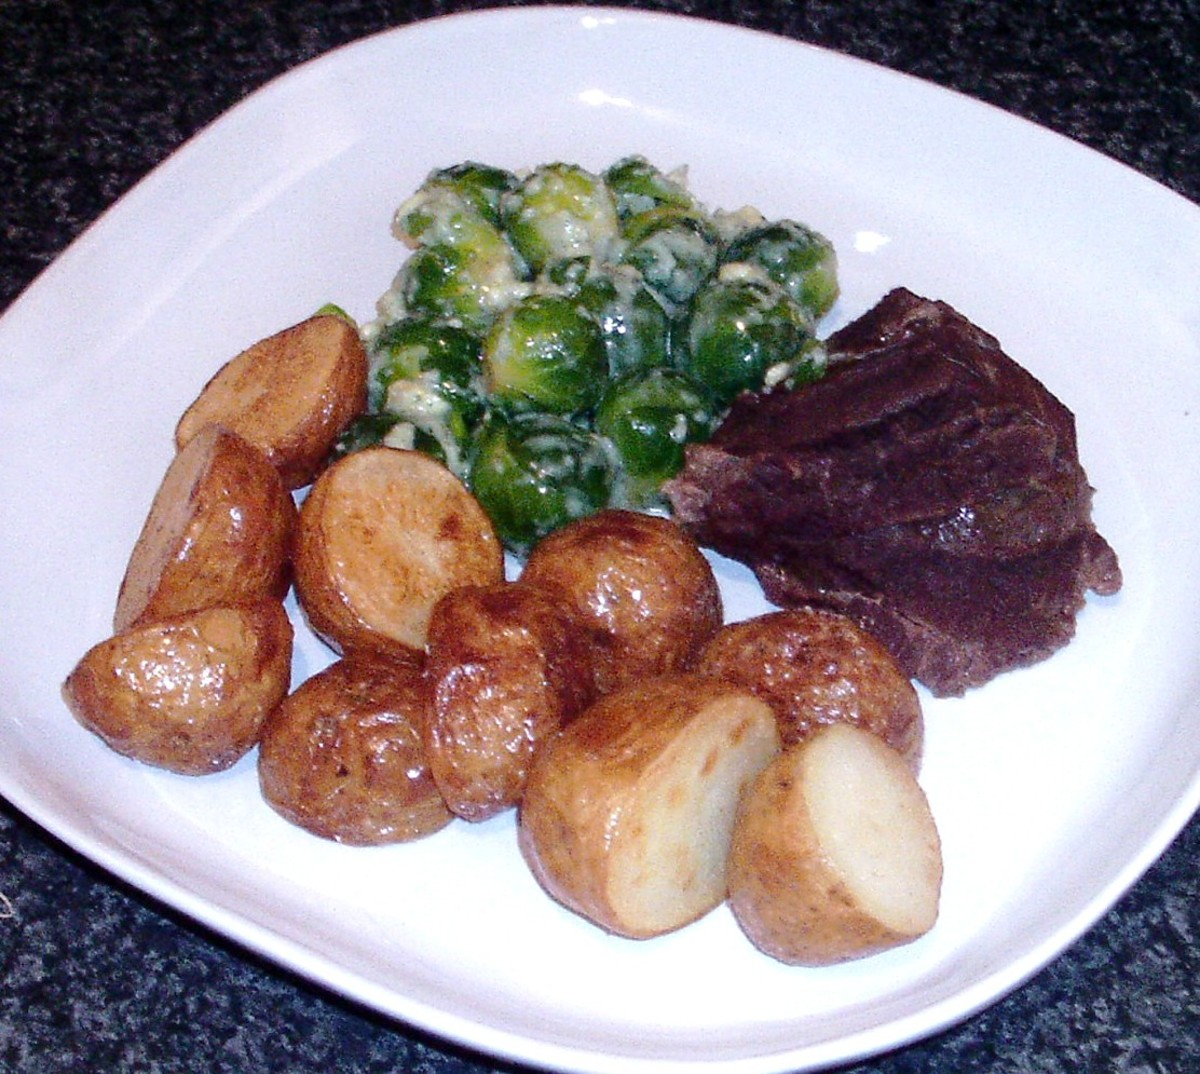 Slow stewed ox cheek with Brussels sprouts in blue cheese and deep fried new potatoes